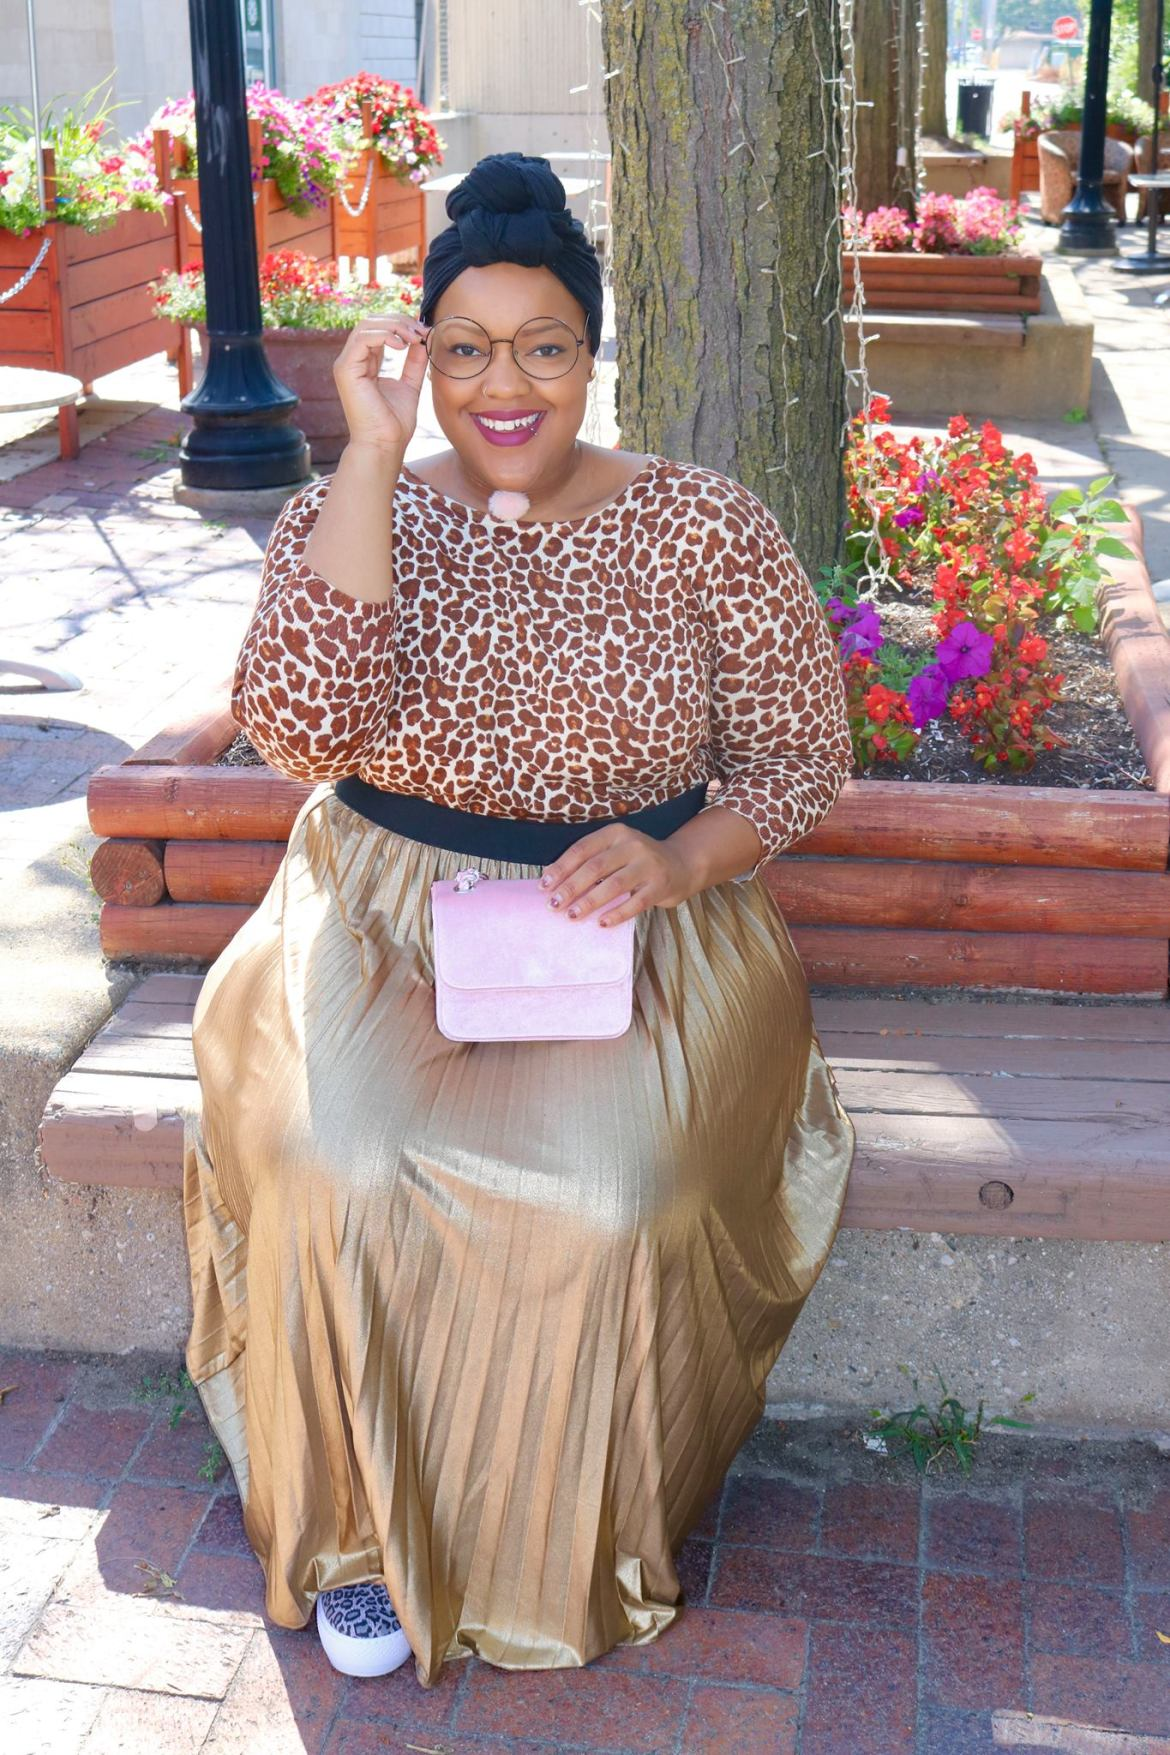 Leah-Vernon-Body-Positive-Plus-Size-Model-Muslim-Girl-Street-Style-Detroit-2